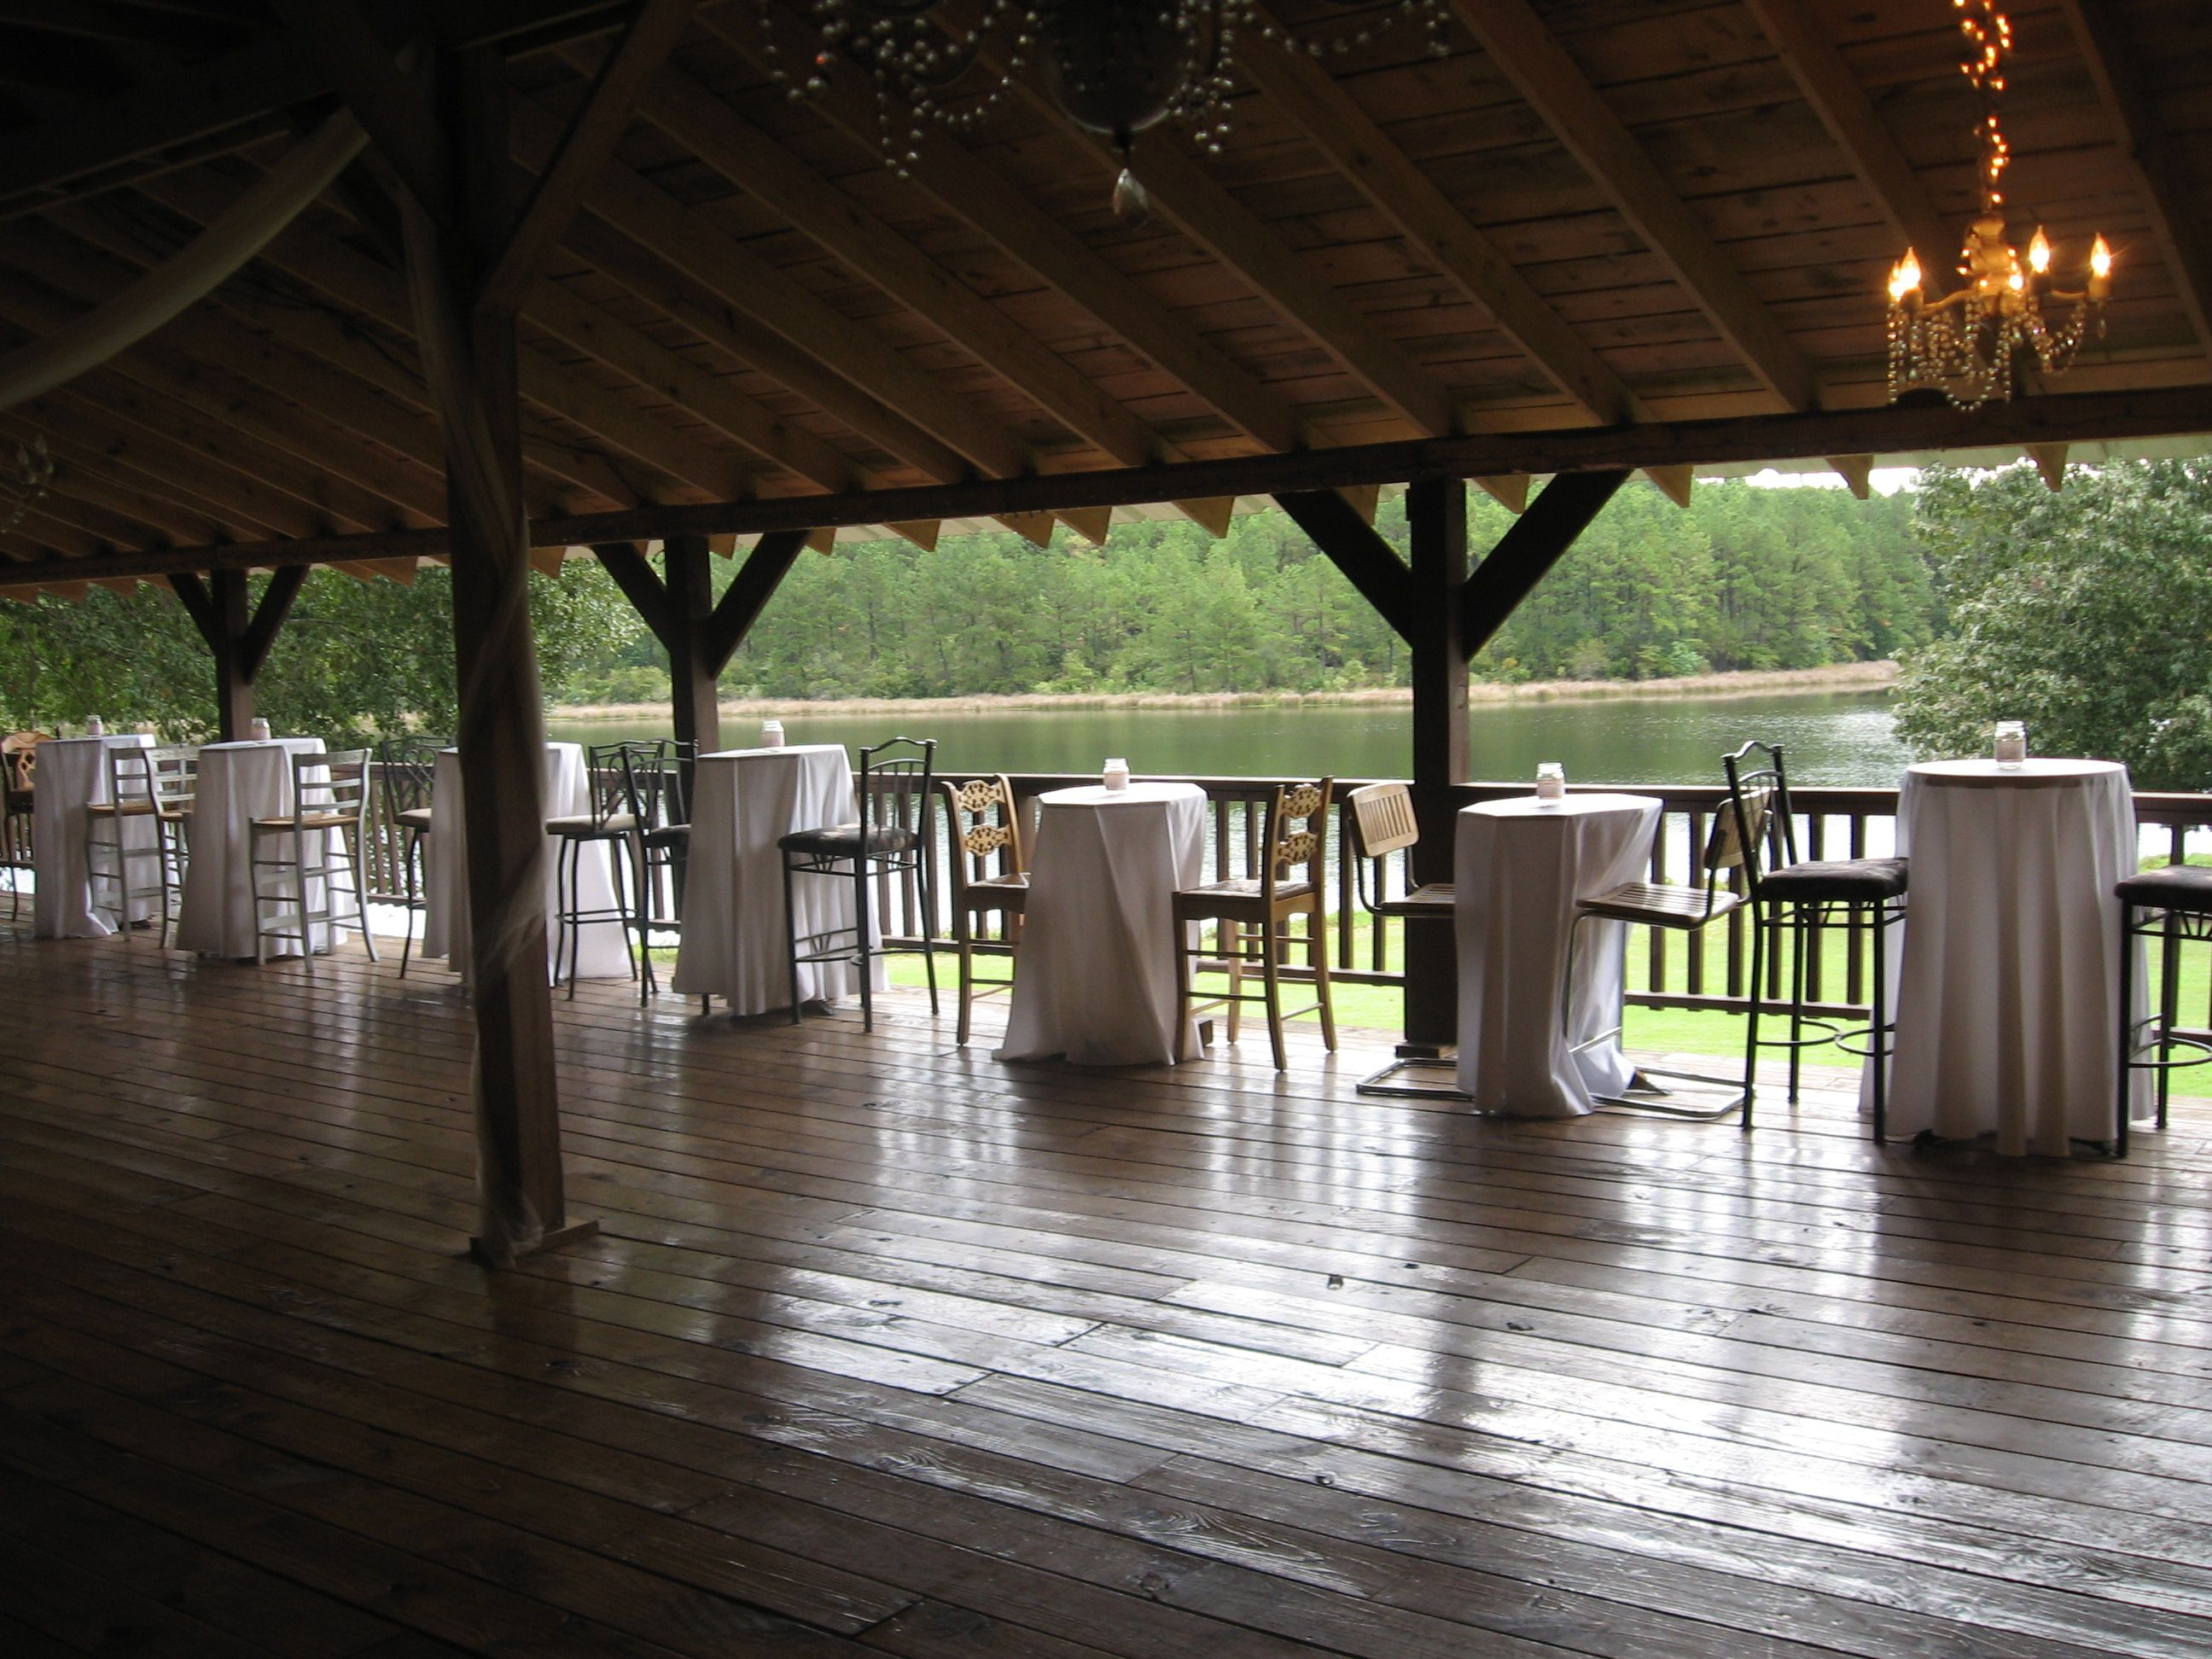 Cochino Lodge Deck for Dancing and viewing the lake